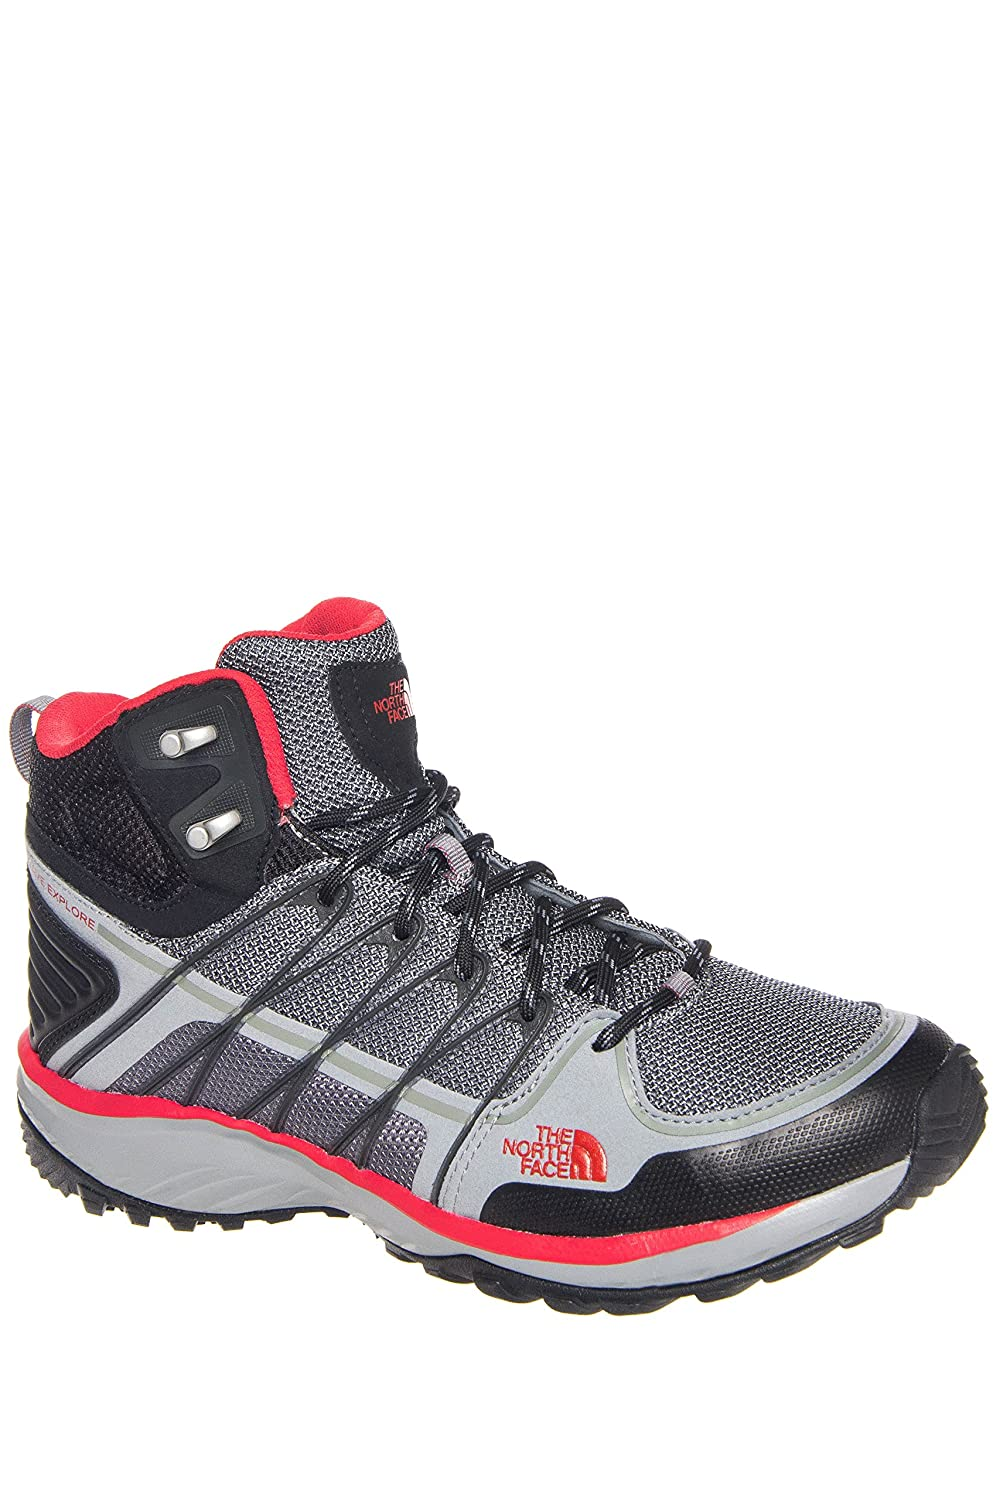 The North Face Litewave Explore Mid Monument Grey/Pompeian Red Men's Hiking Boots